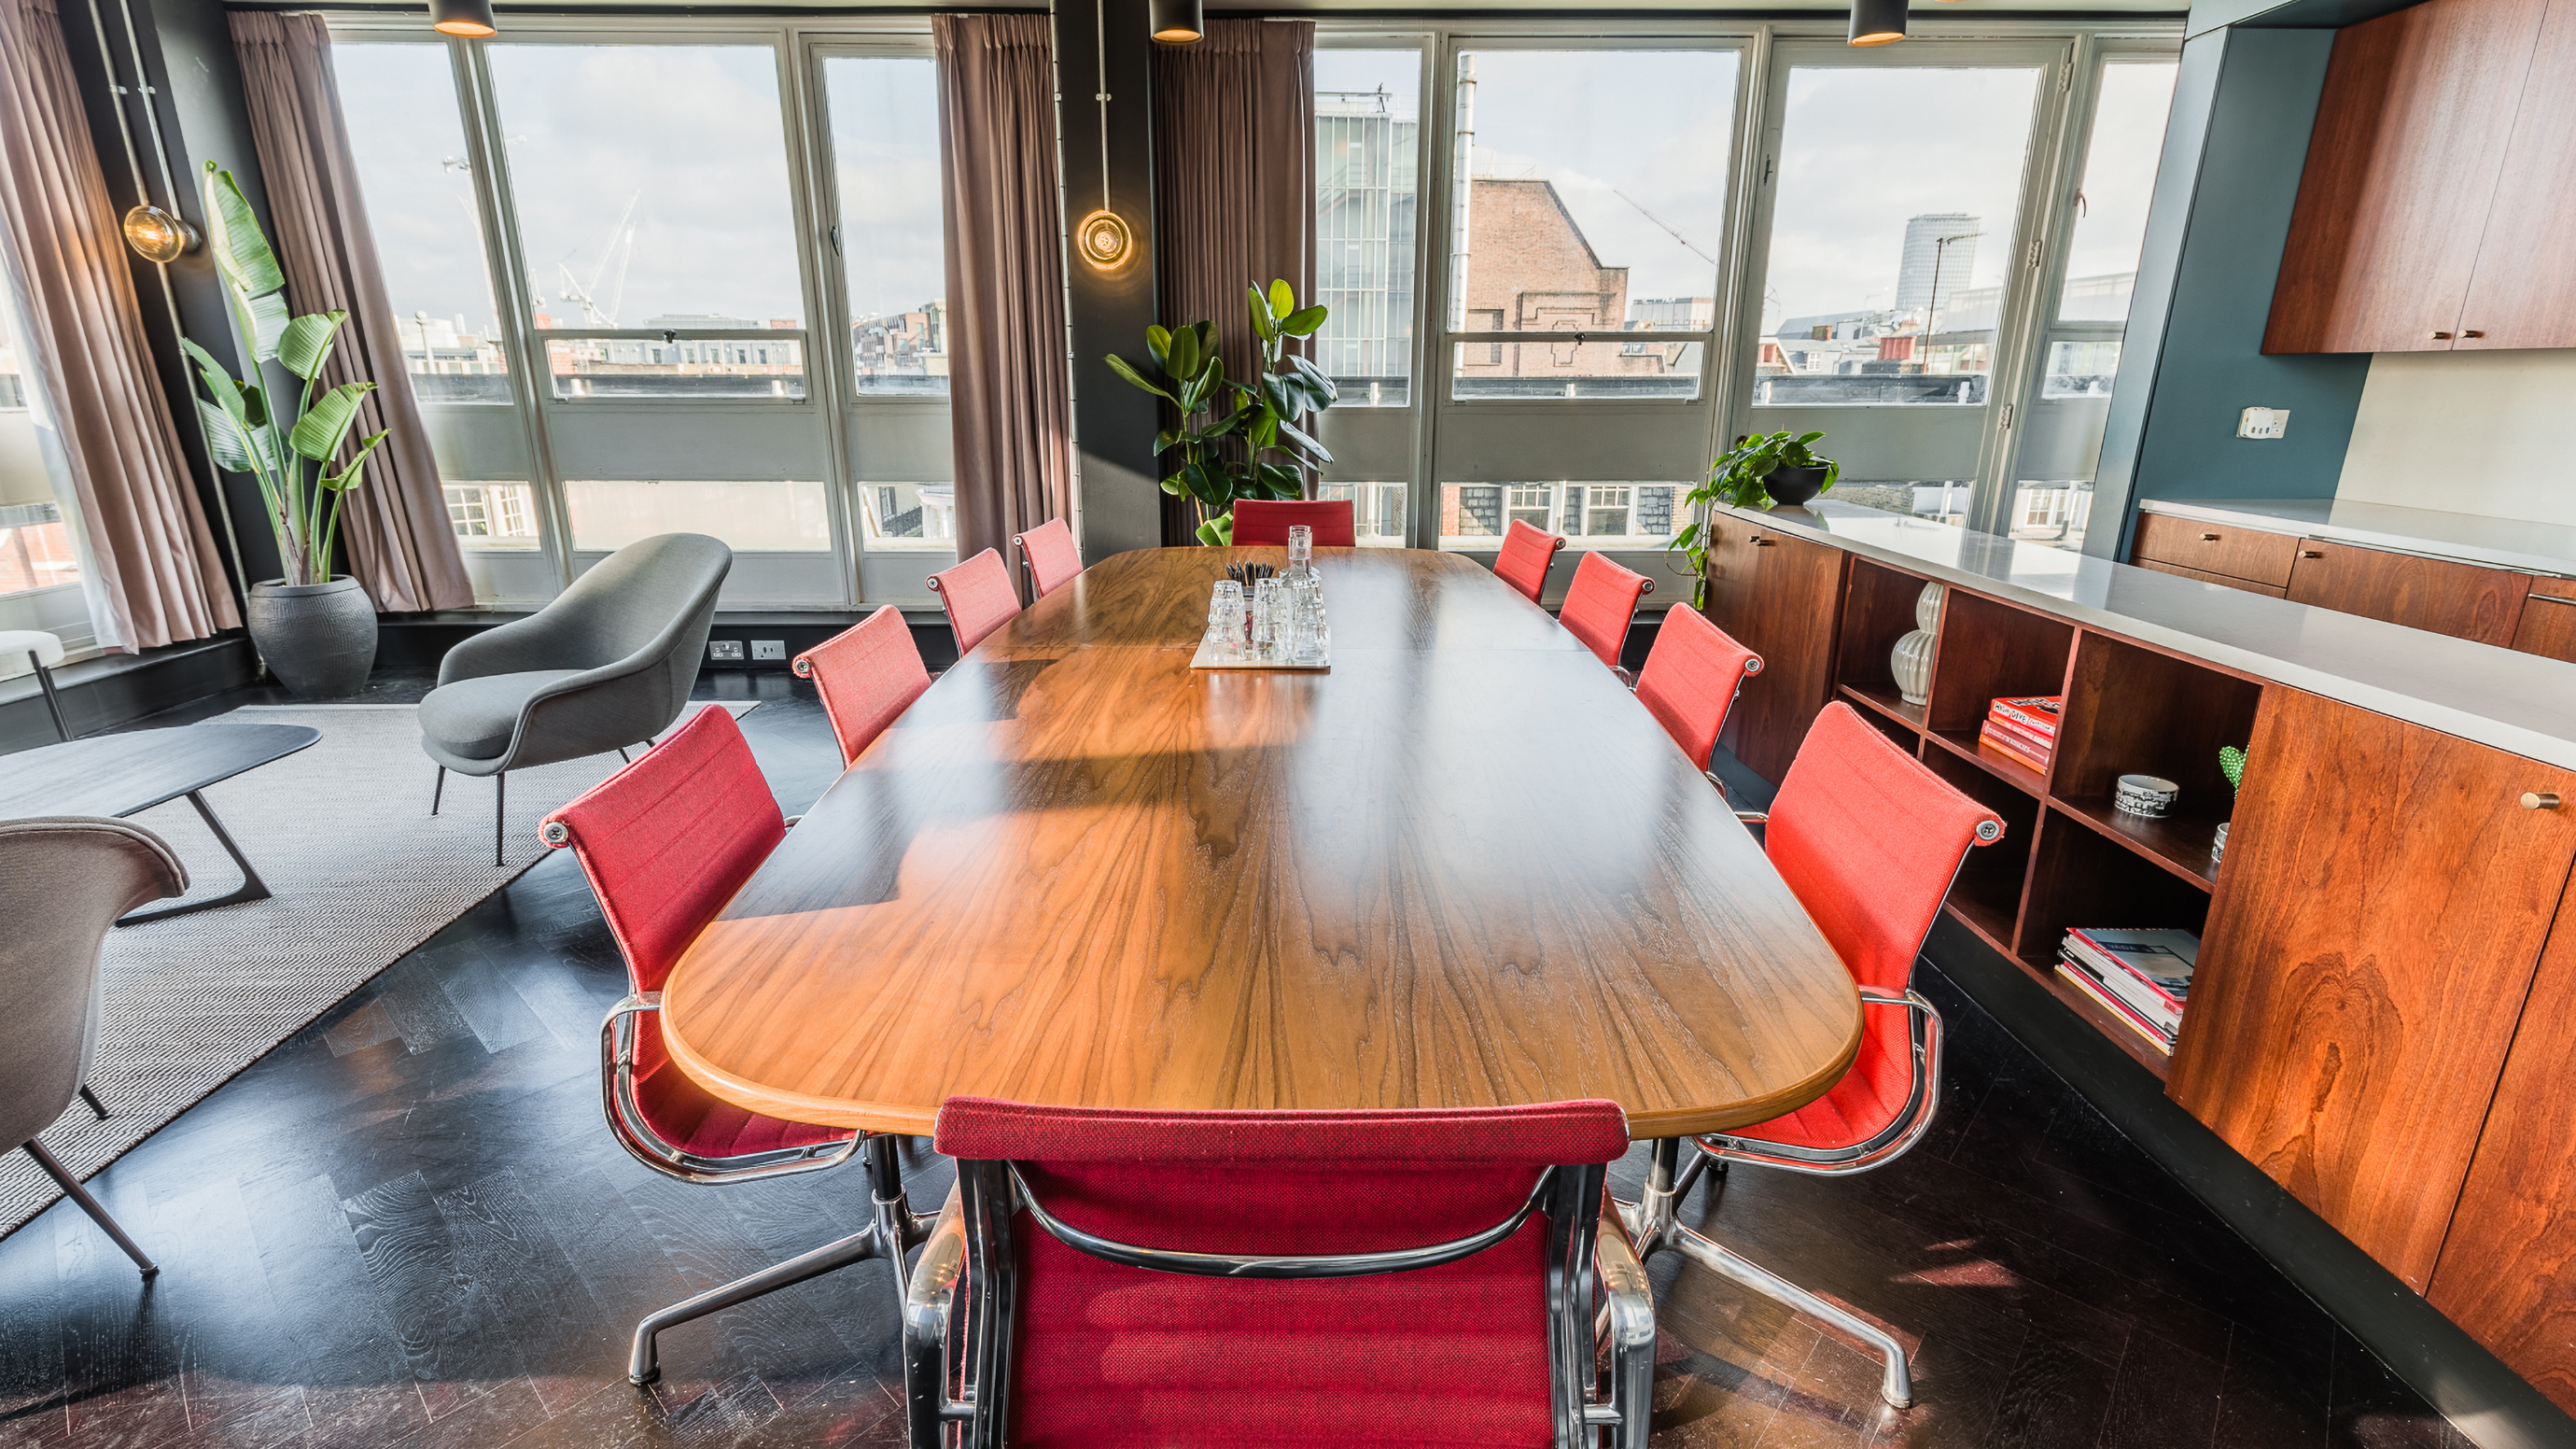 Penthouse medium meeting room with wooden table and red chairs at TOG building Henry Wood House London